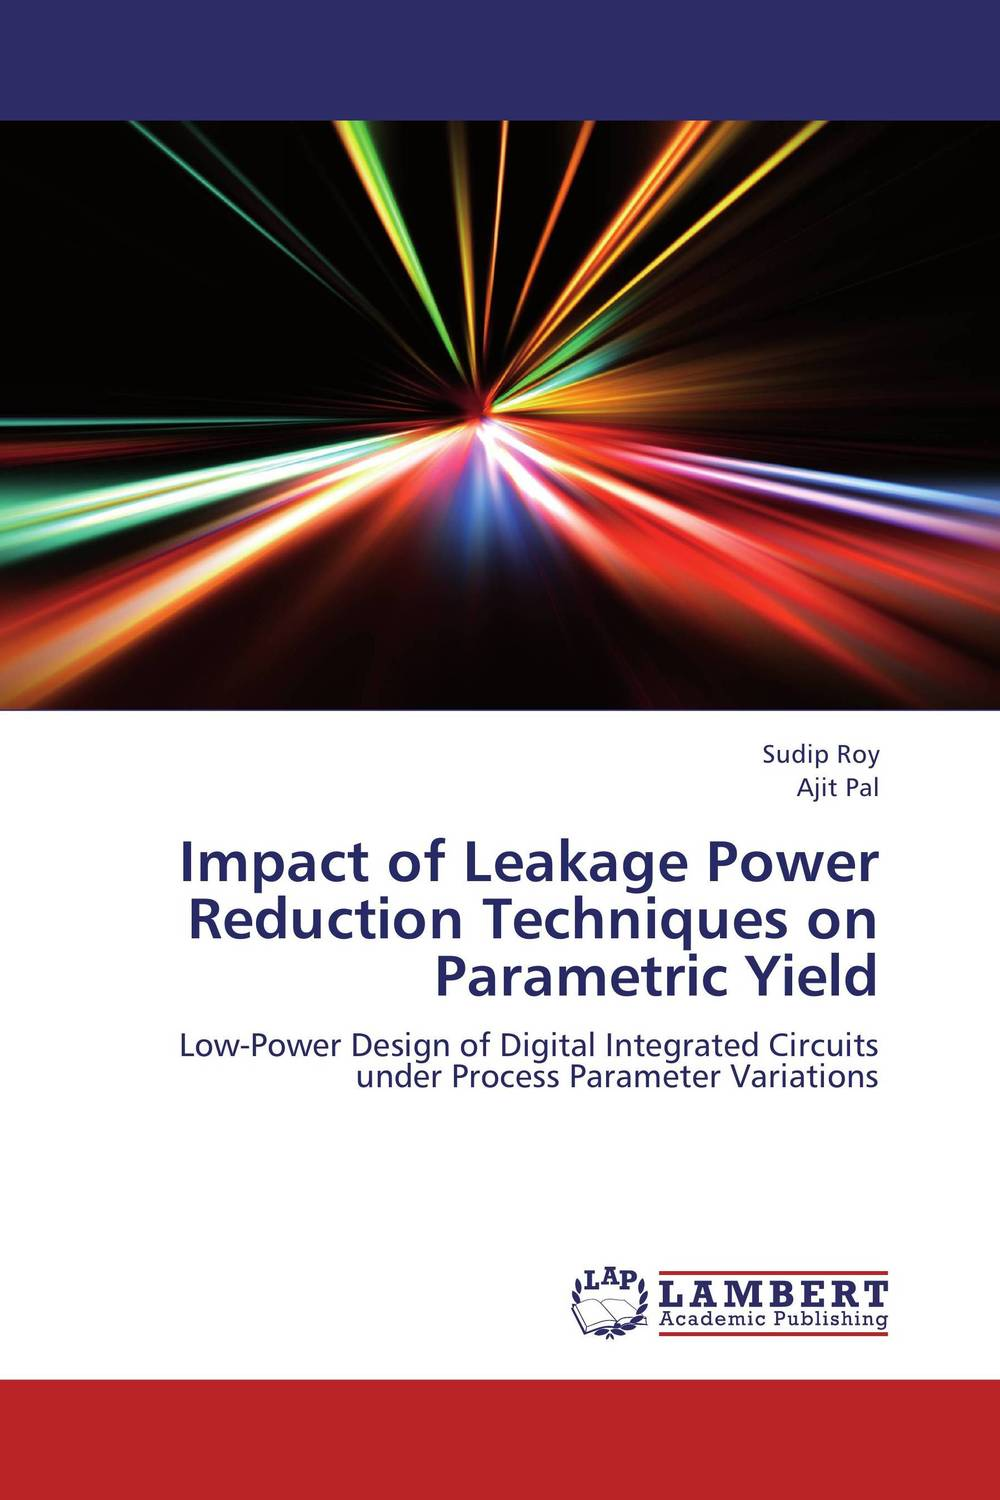 Impact of Leakage Power Reduction Techniques on Parametric Yield netcat power tools